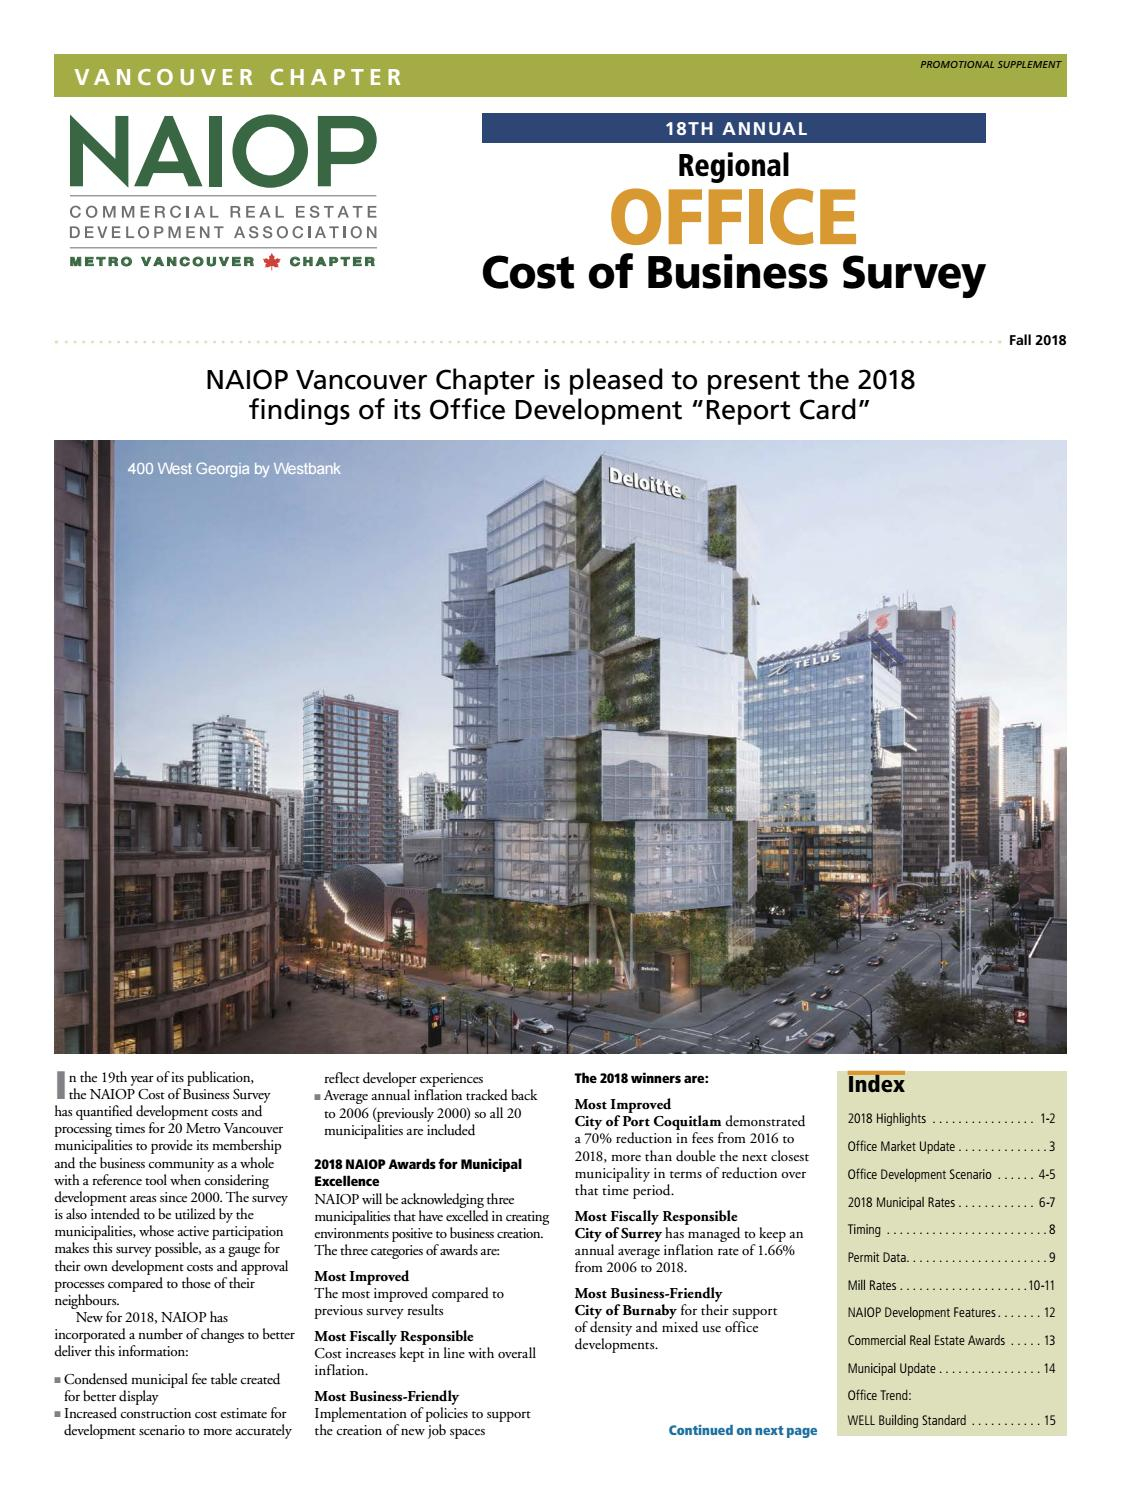 NAIOP Report Fall 2018 by Business in Vancouver Media Group - issuu